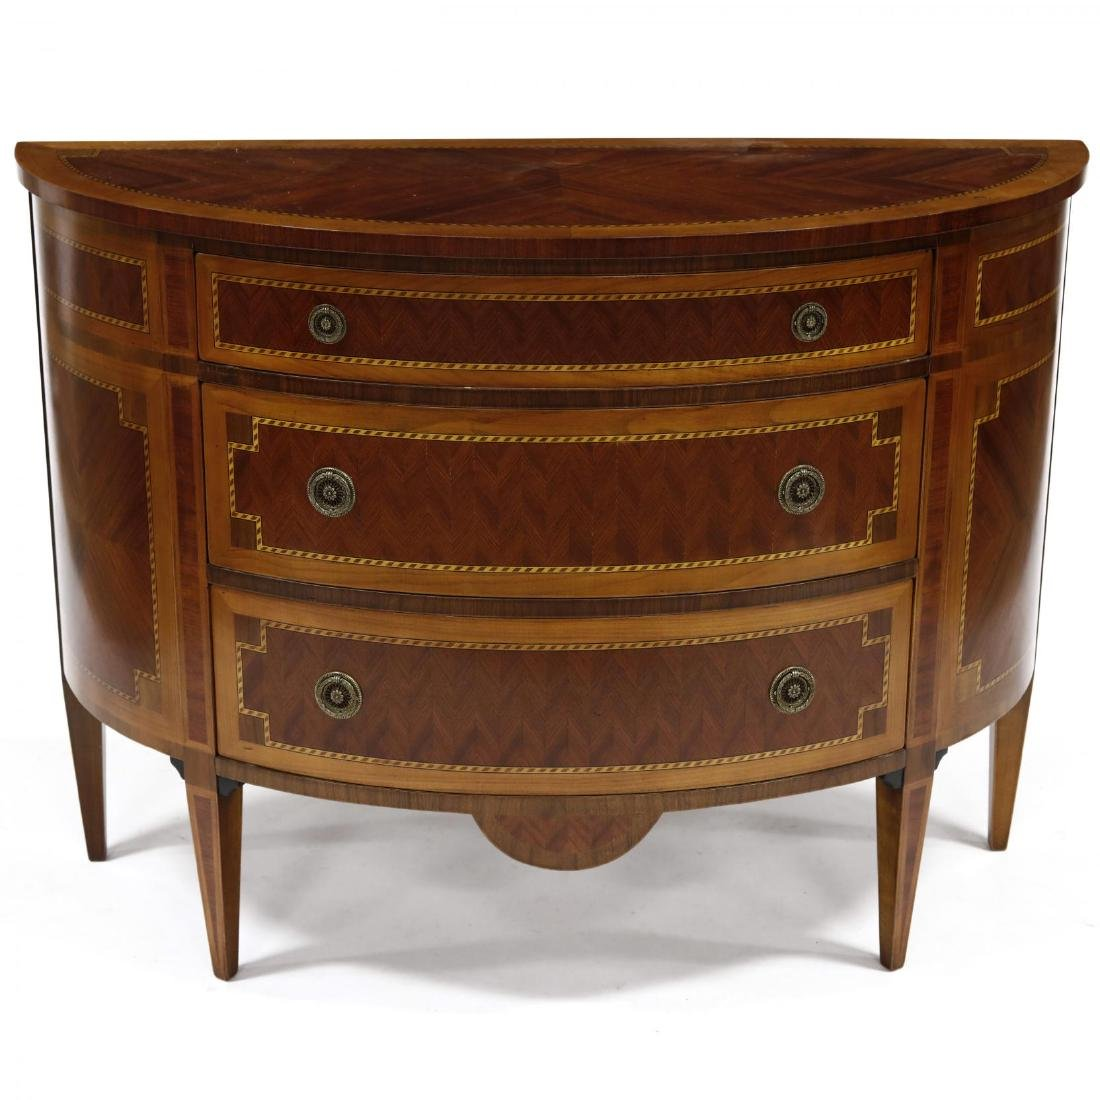 Italian Inlaid Mahogany Commode - 2